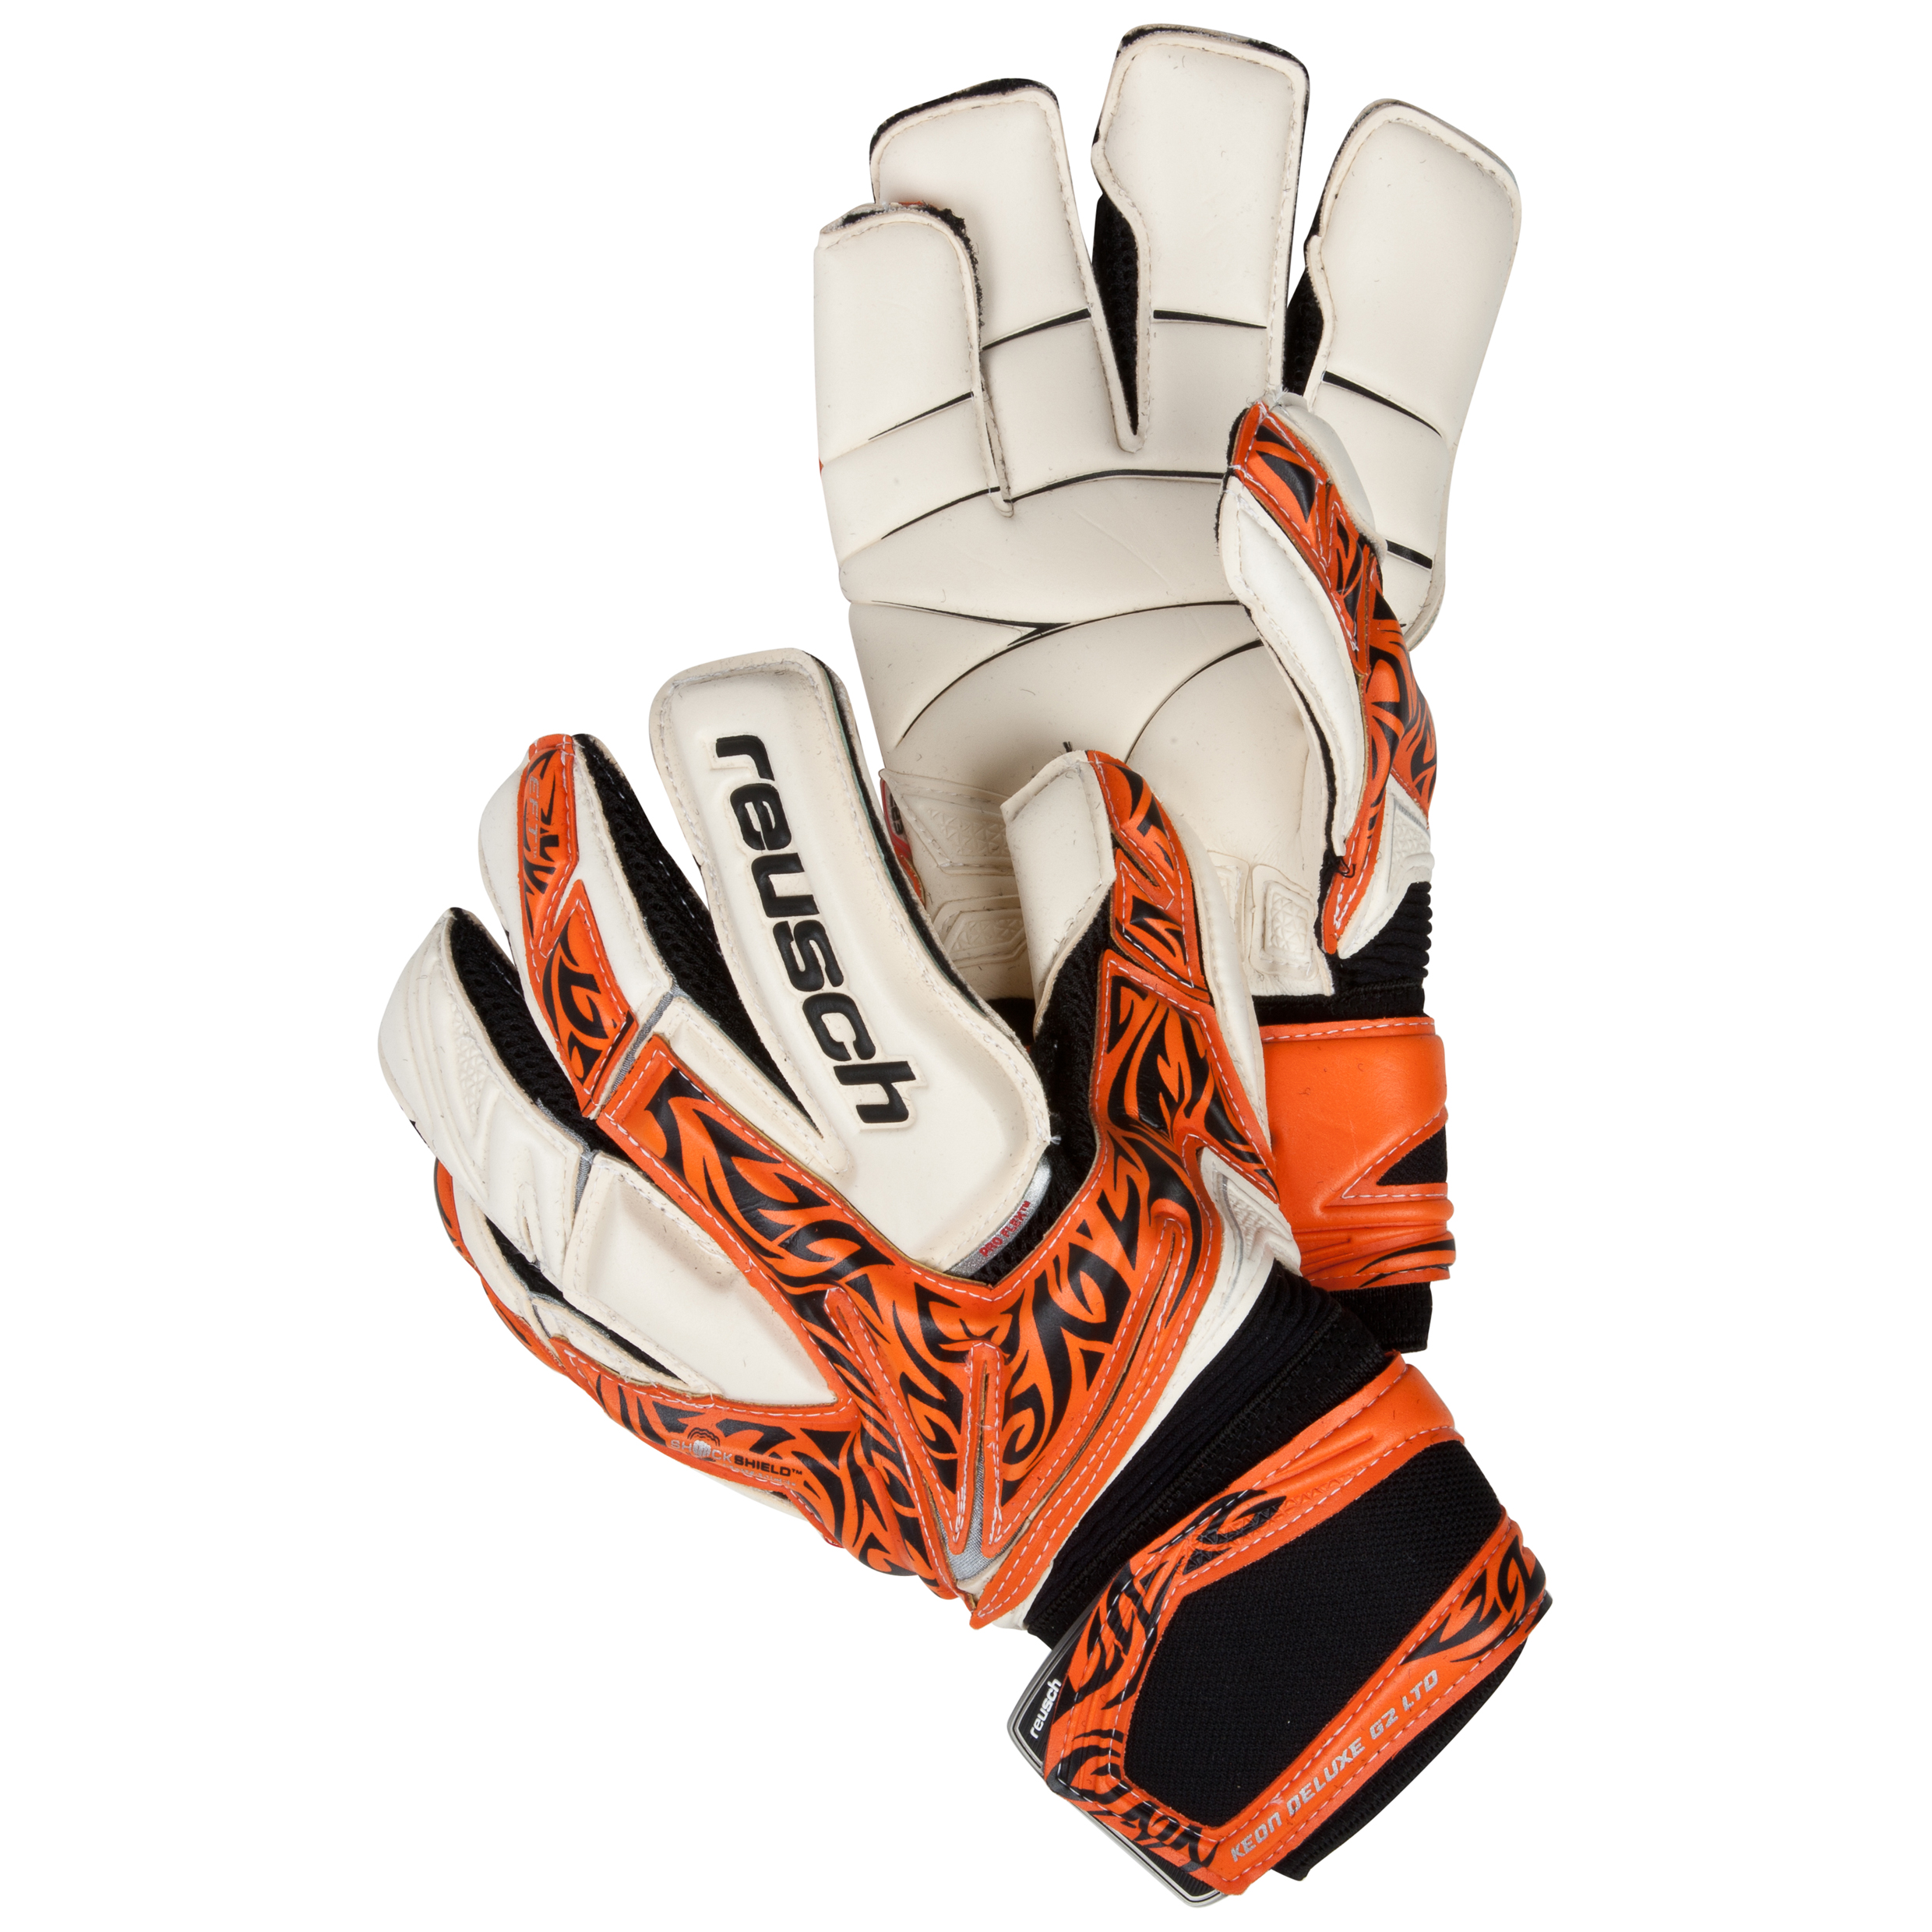 Reusch Keon Deluxe G2 LTD Goalkeeper Gloves-Orange/Black/Ltd